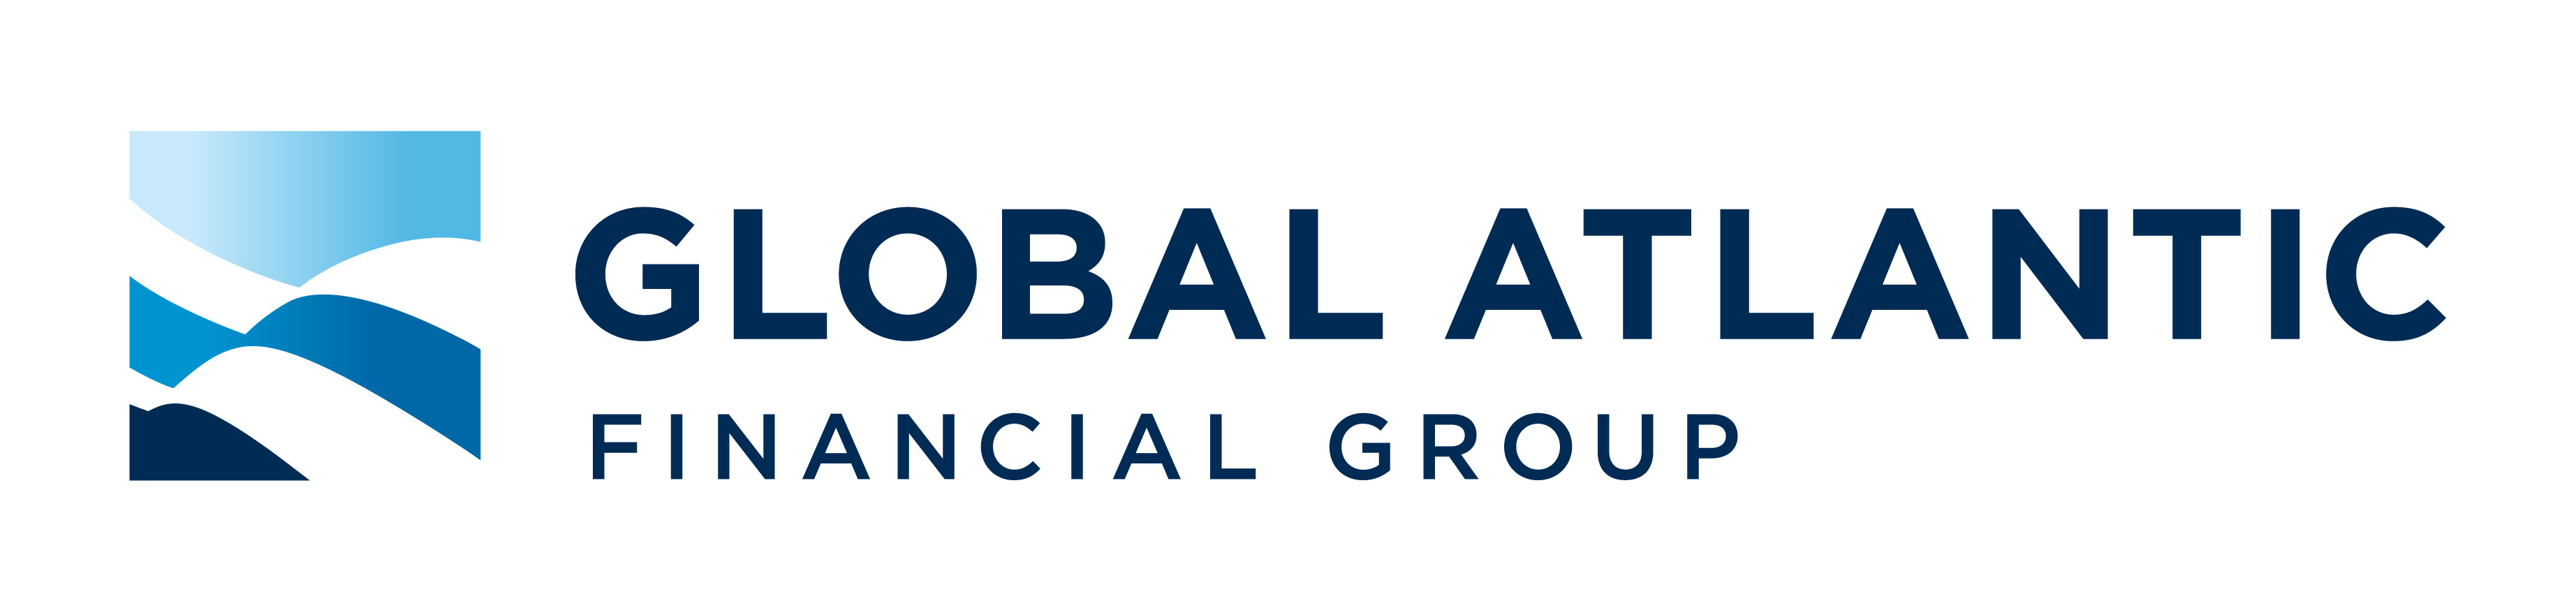 global_atlantic_logo